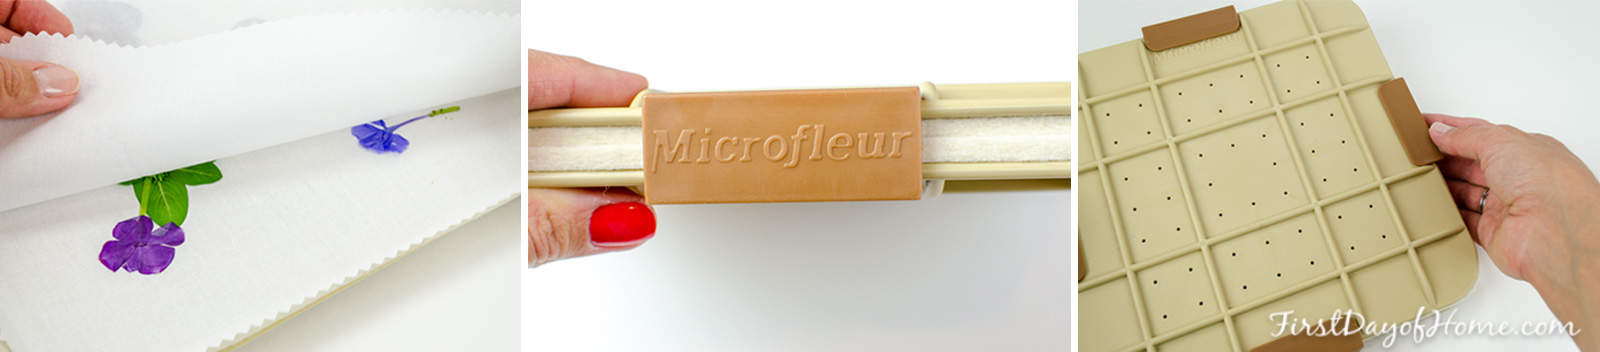 Pressing flowers in the Microfleur microwave flower press using clamps